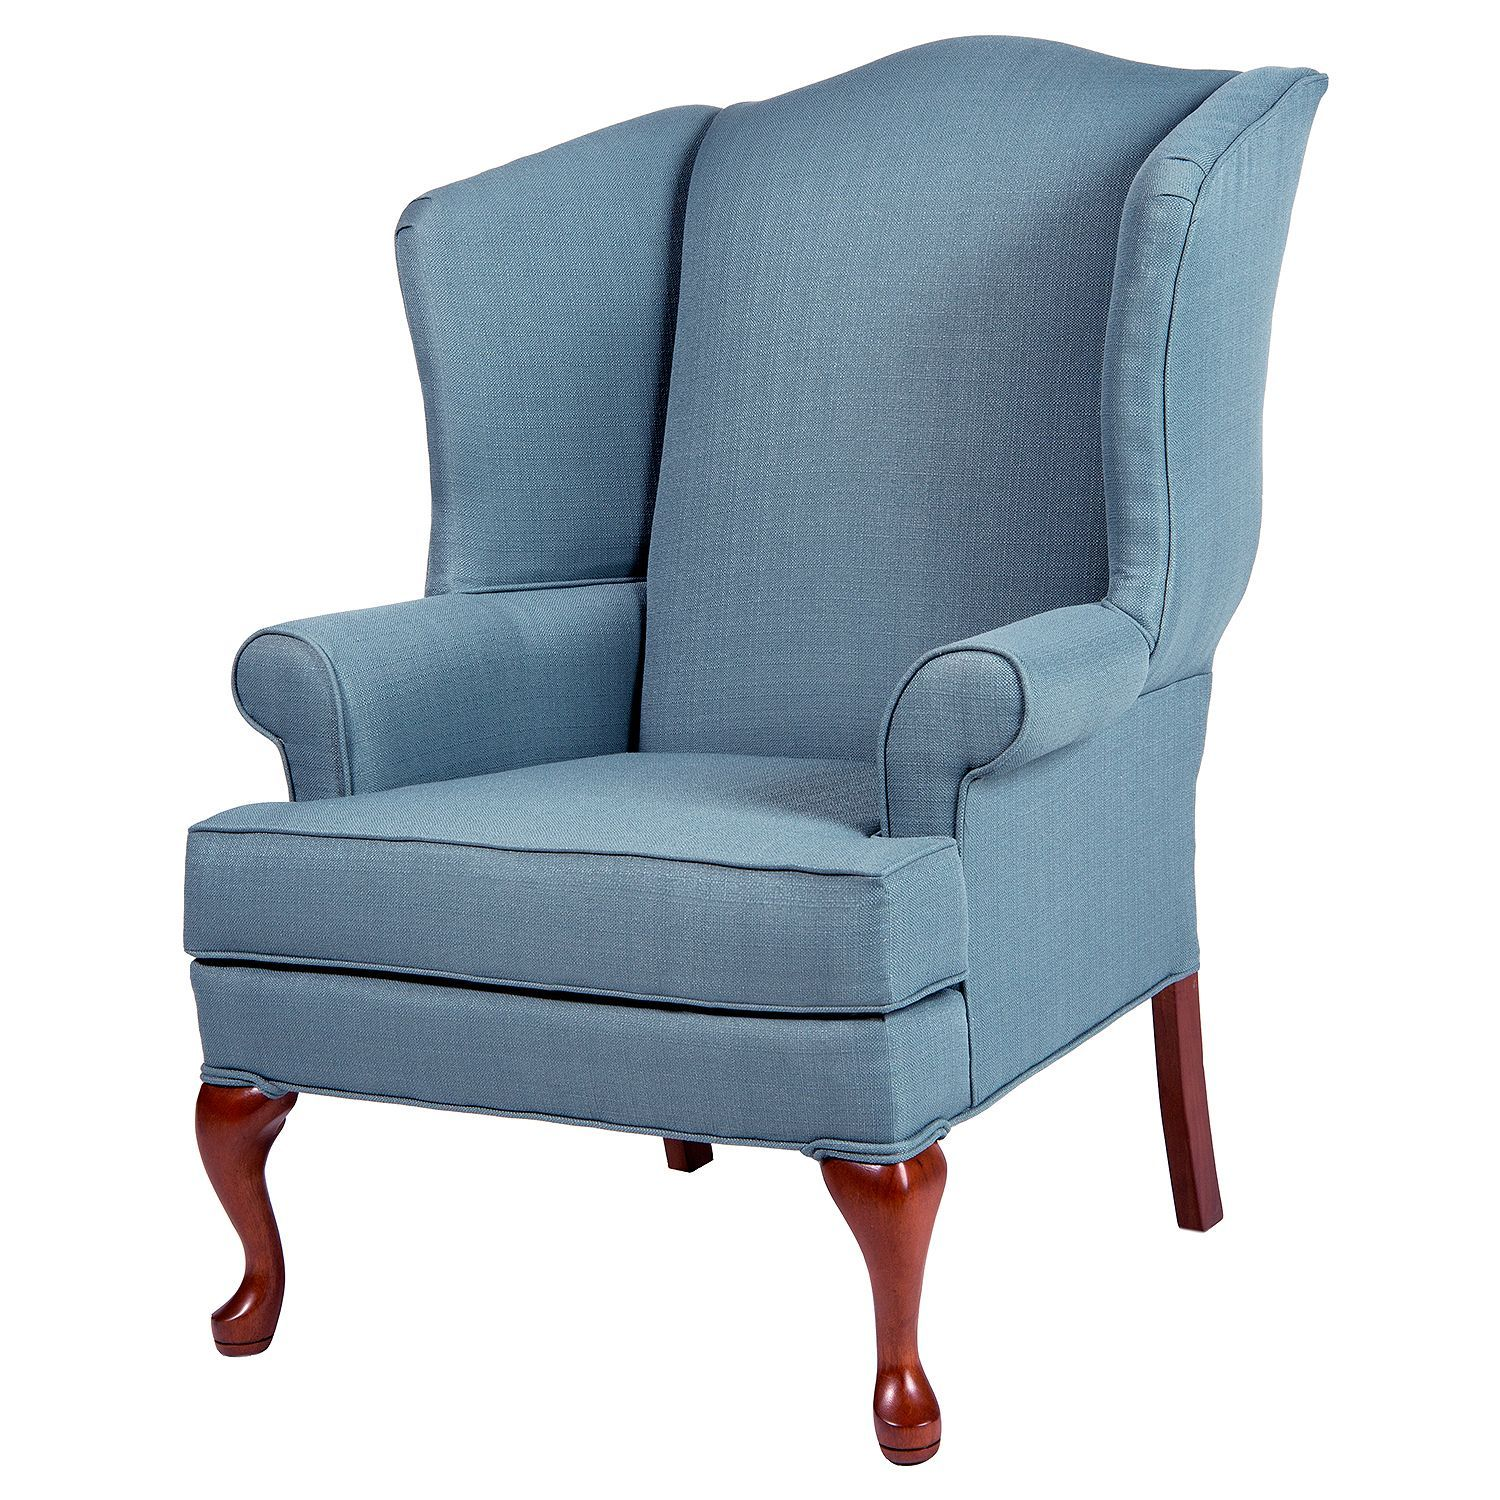 Superb Ellis Colonial Blue Wingback Chair Sams Club Wingback Gamerscity Chair Design For Home Gamerscityorg